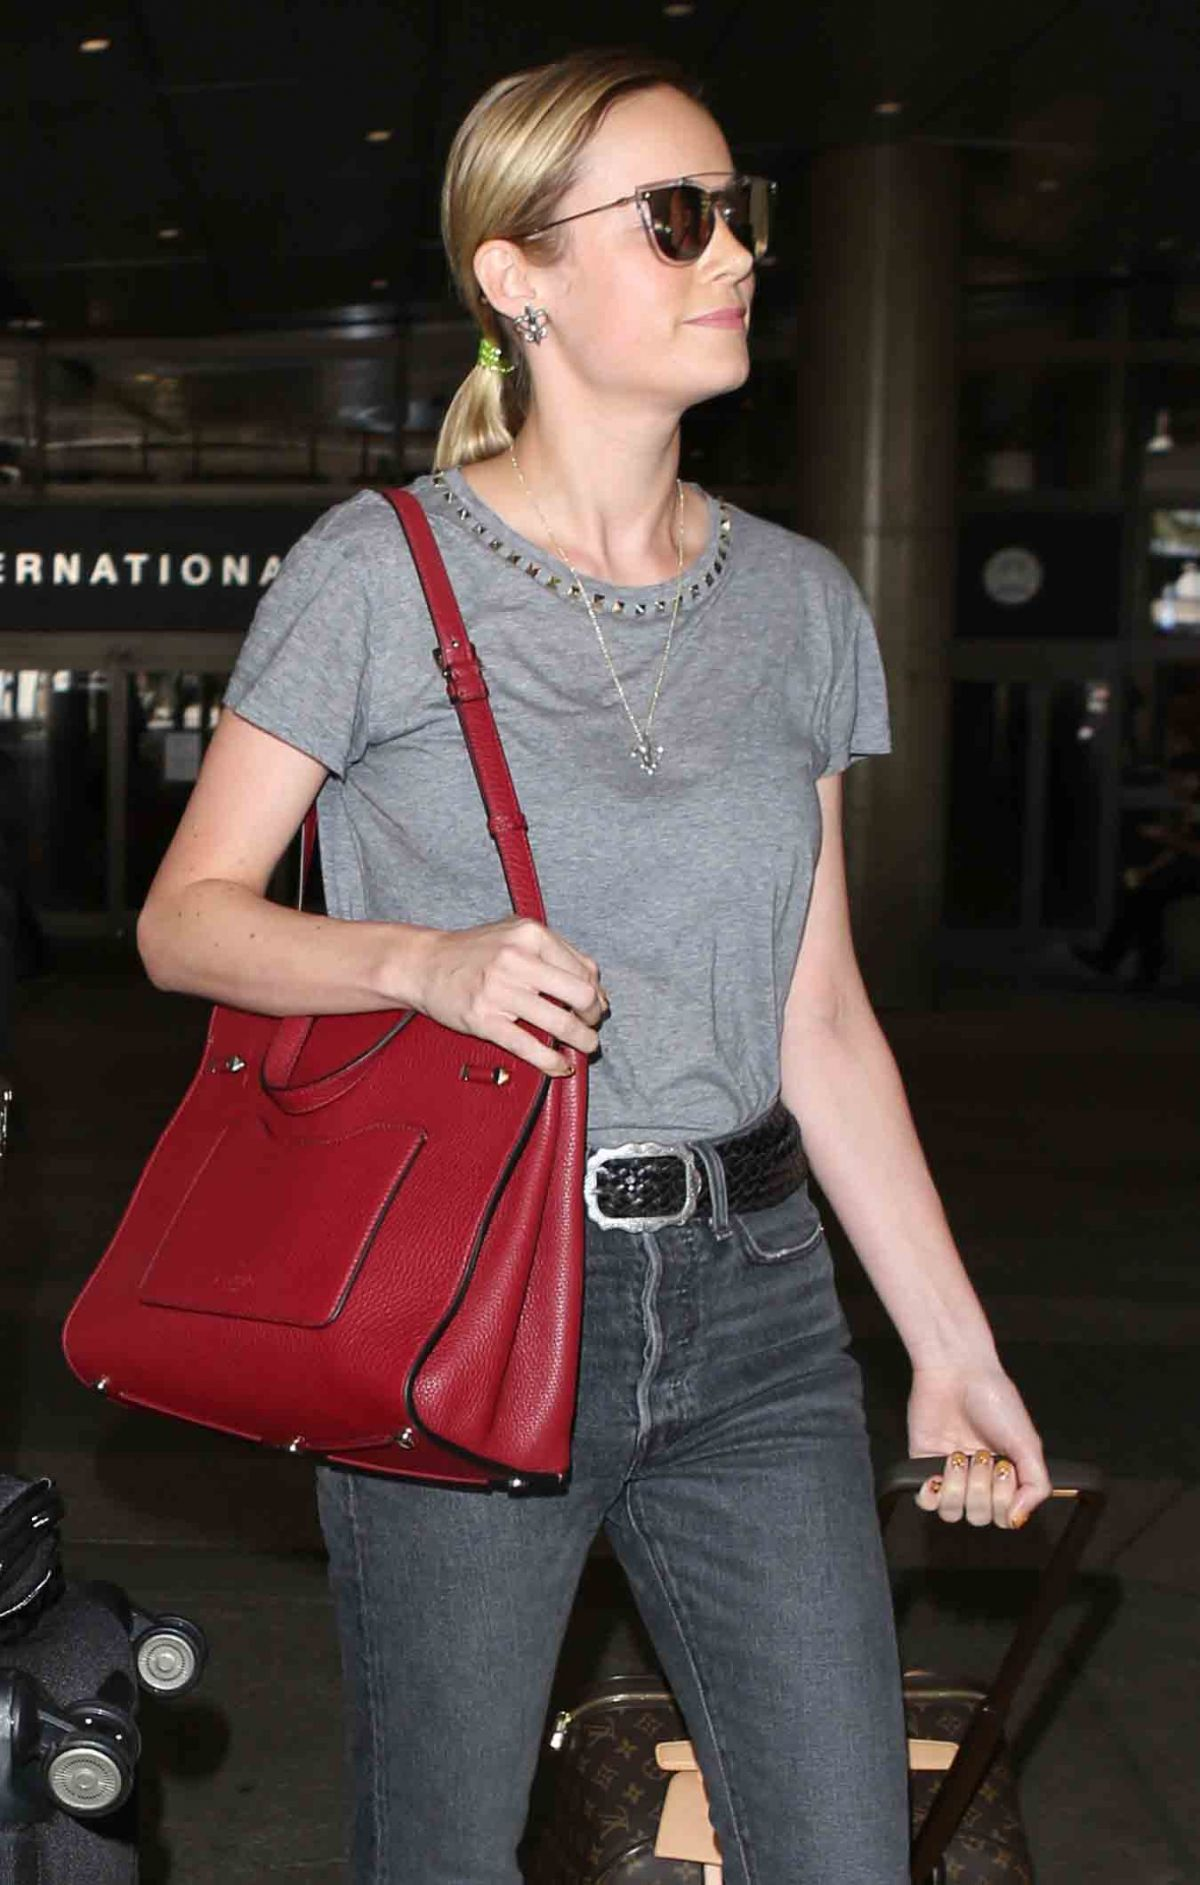 BRIE LARSON at LAX Airport in Los Angeles 07/07/2017